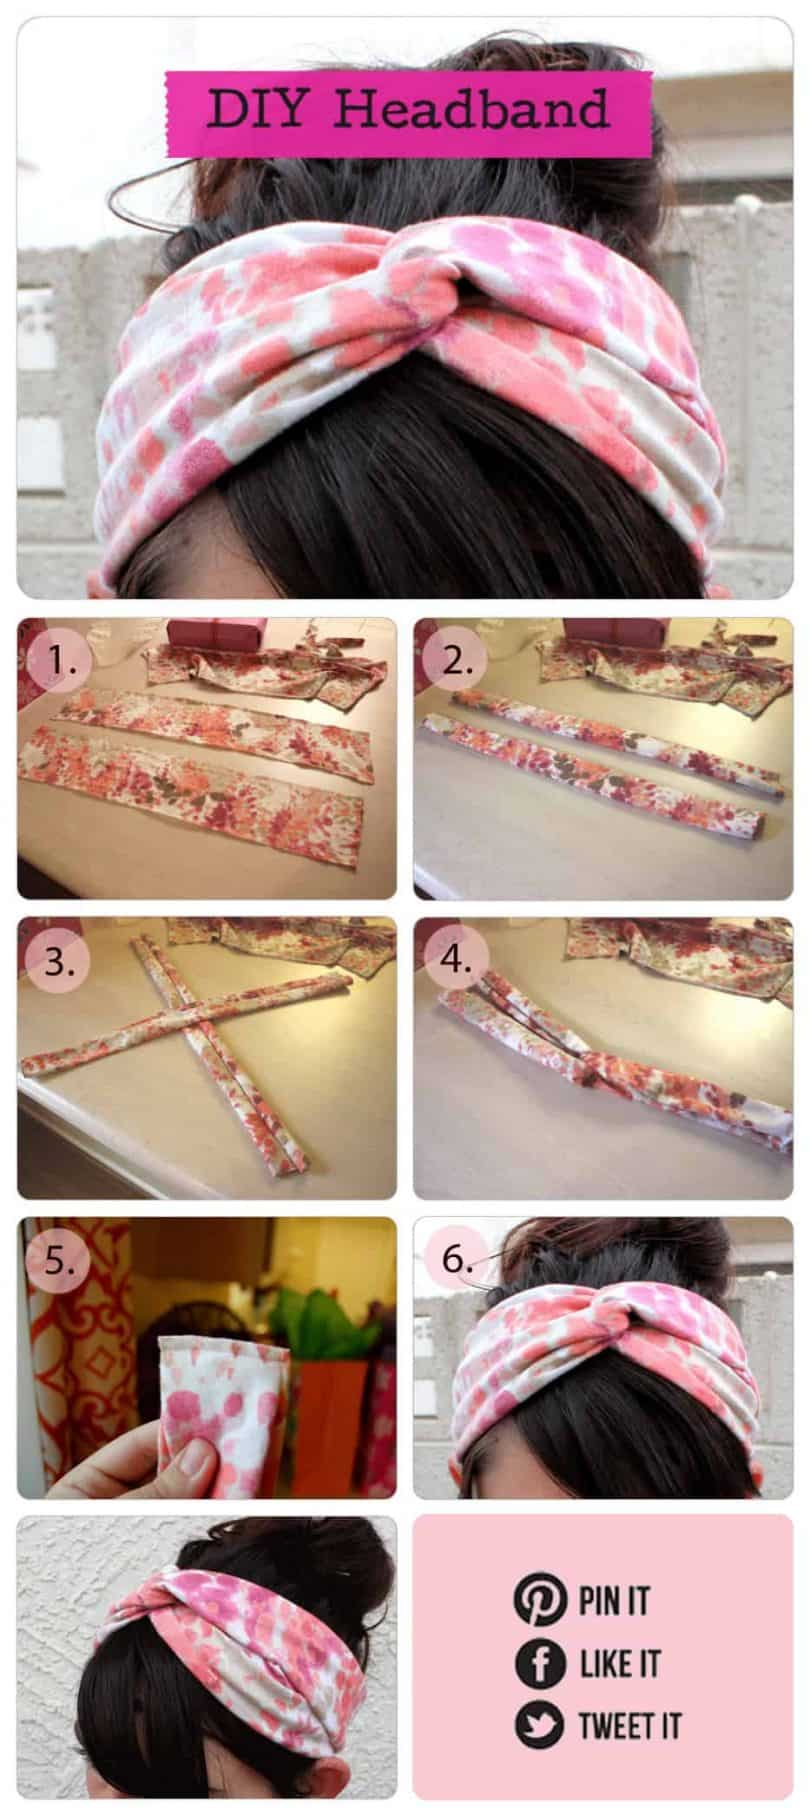 DIY fabric headband tutorial